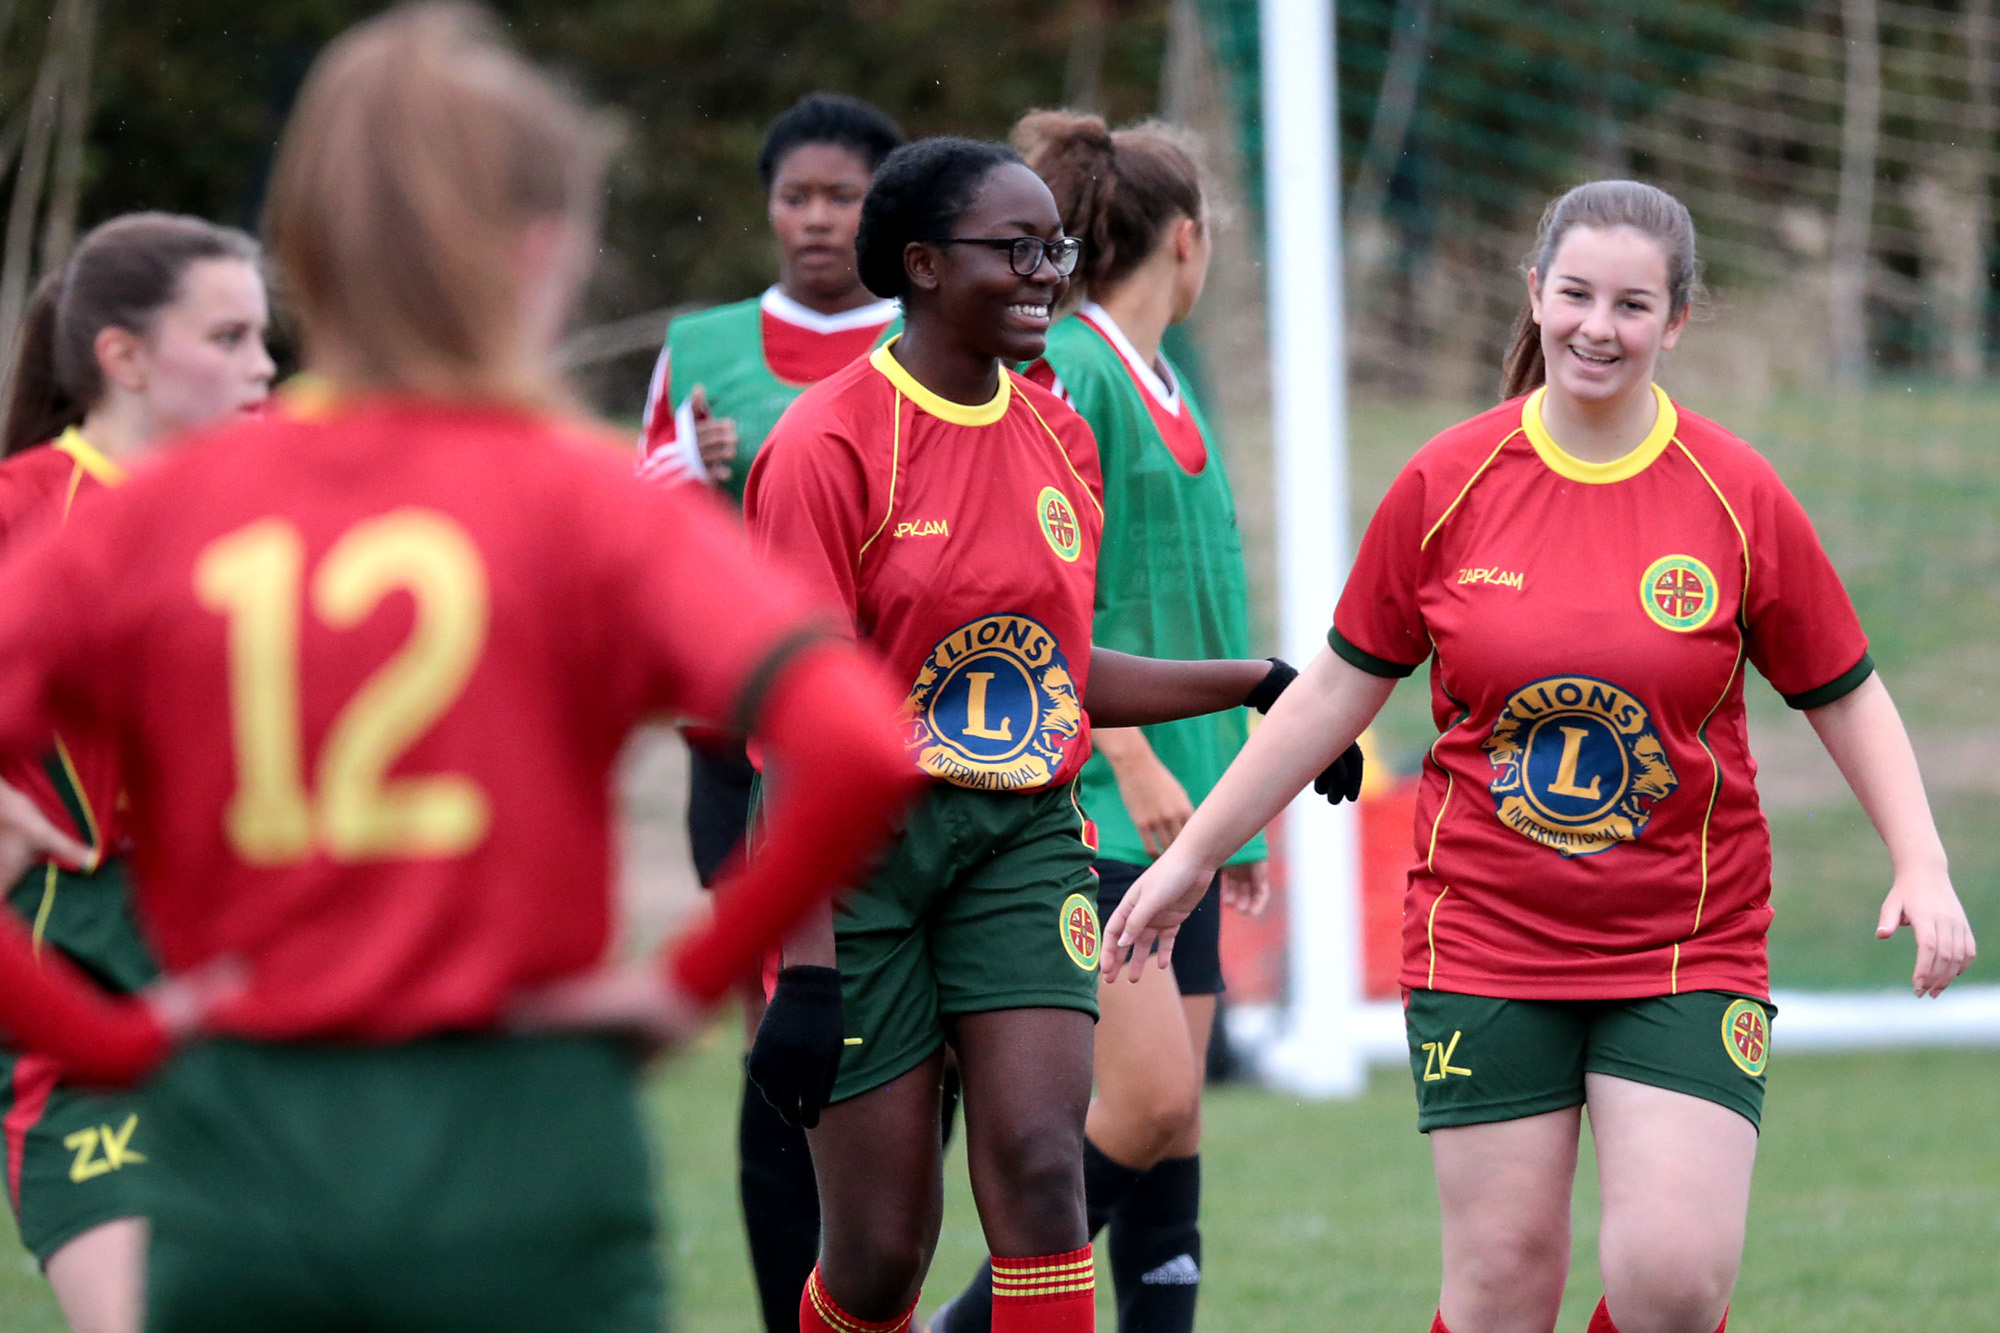 DELIGHT: Elizabeth Mate (centre) celebrates opening the scoring for Carterton Under 16s during their win over Barton United Picture: Ric Mellis